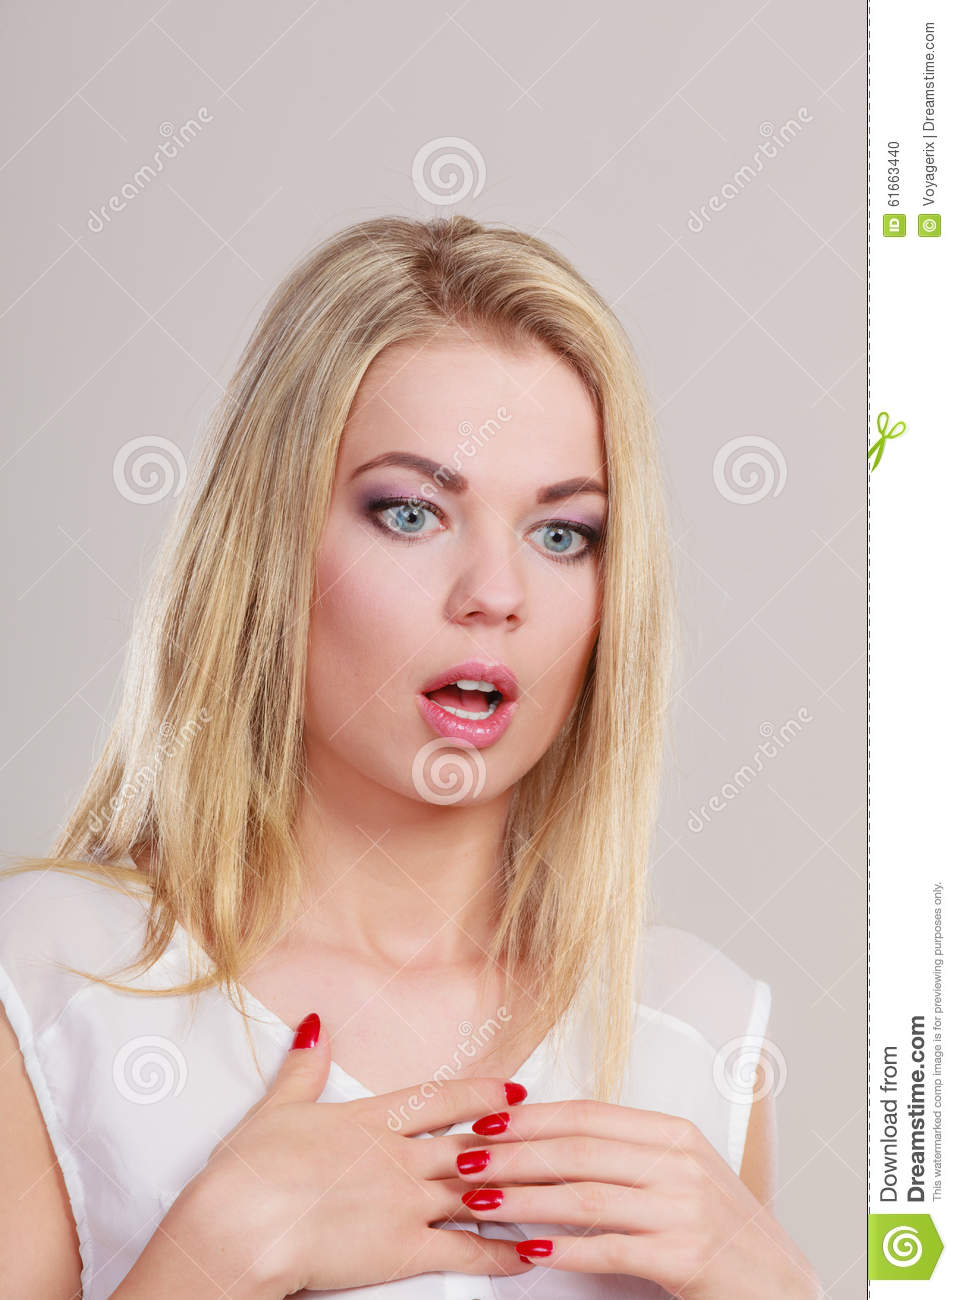 Surprised Shocked Woman Face With Open Mouth Stock Photo ...  Surprised Shock...